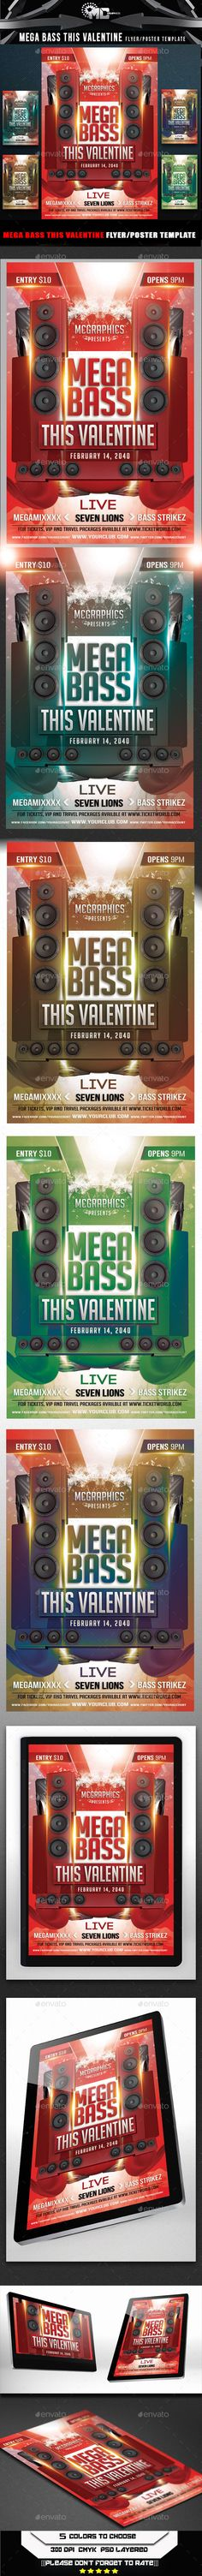 Mega Bass This Valentine Flyer Template — Photoshop PSD #drum  bass #flyer • Available here → https://graphicriver.net/item/mega-bass-this-valentine-flyer-template/6685630?ref=pxcr